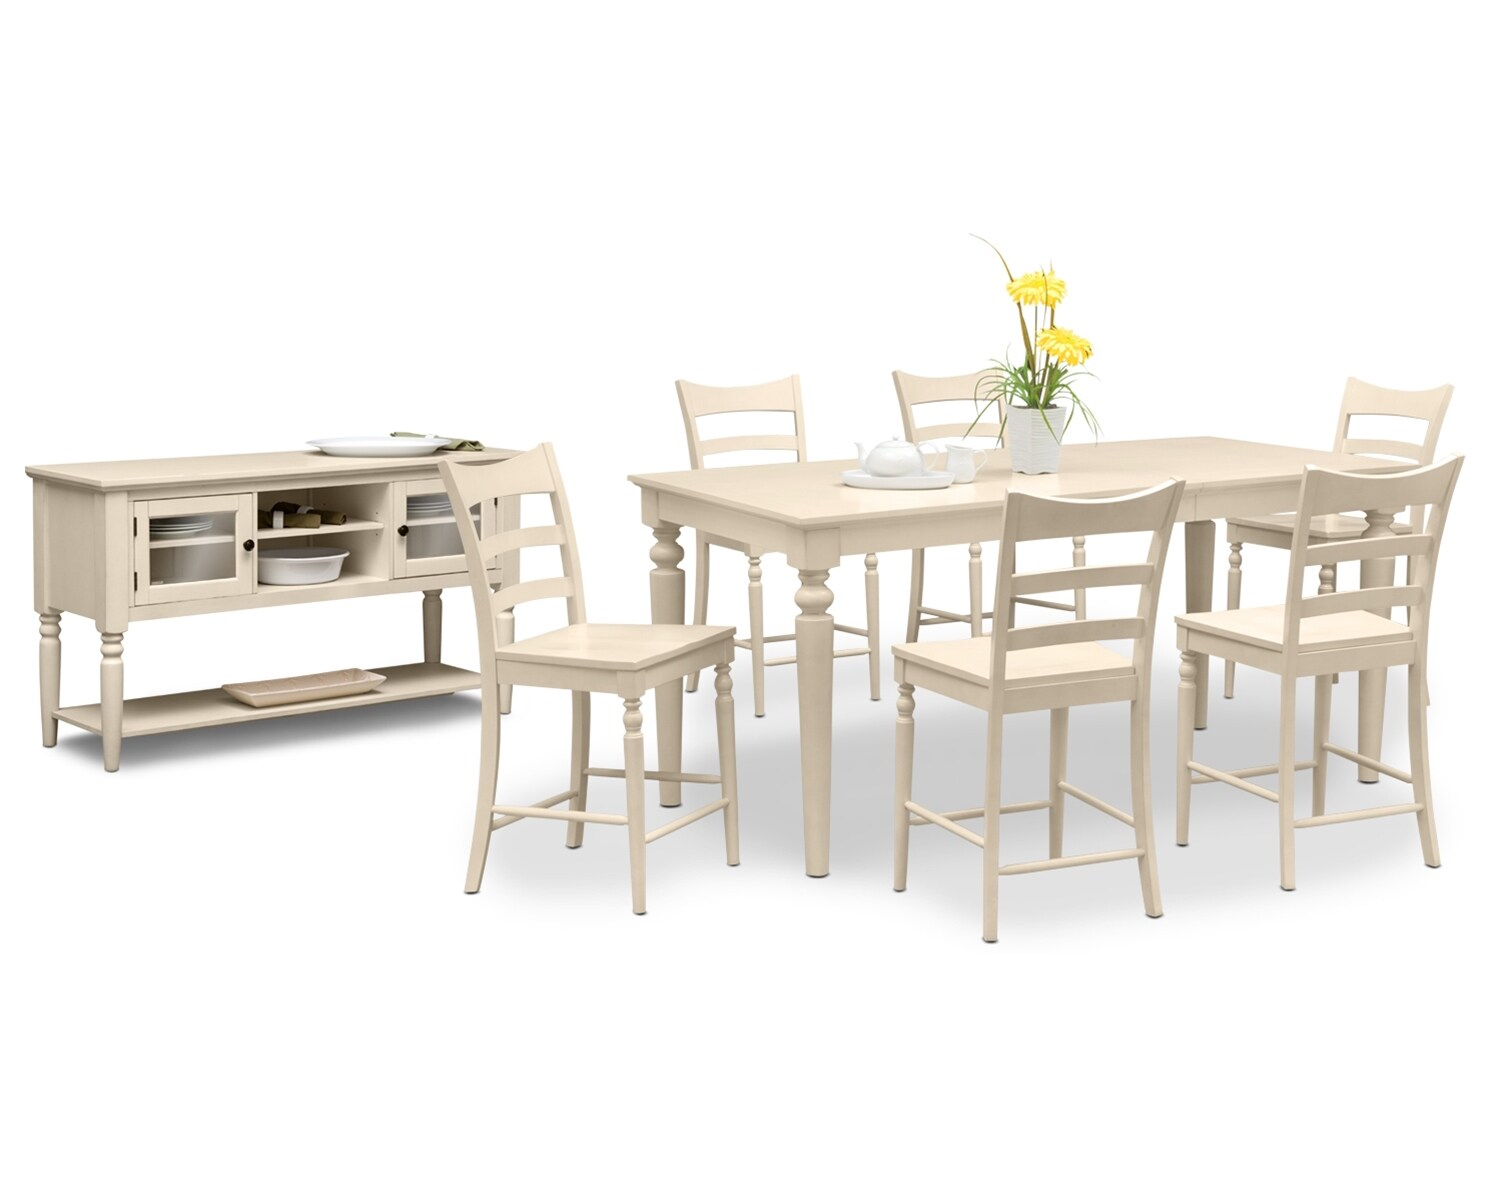 Dining Room Furniture - The Thompson II Cream Collection - Counter-Height Table